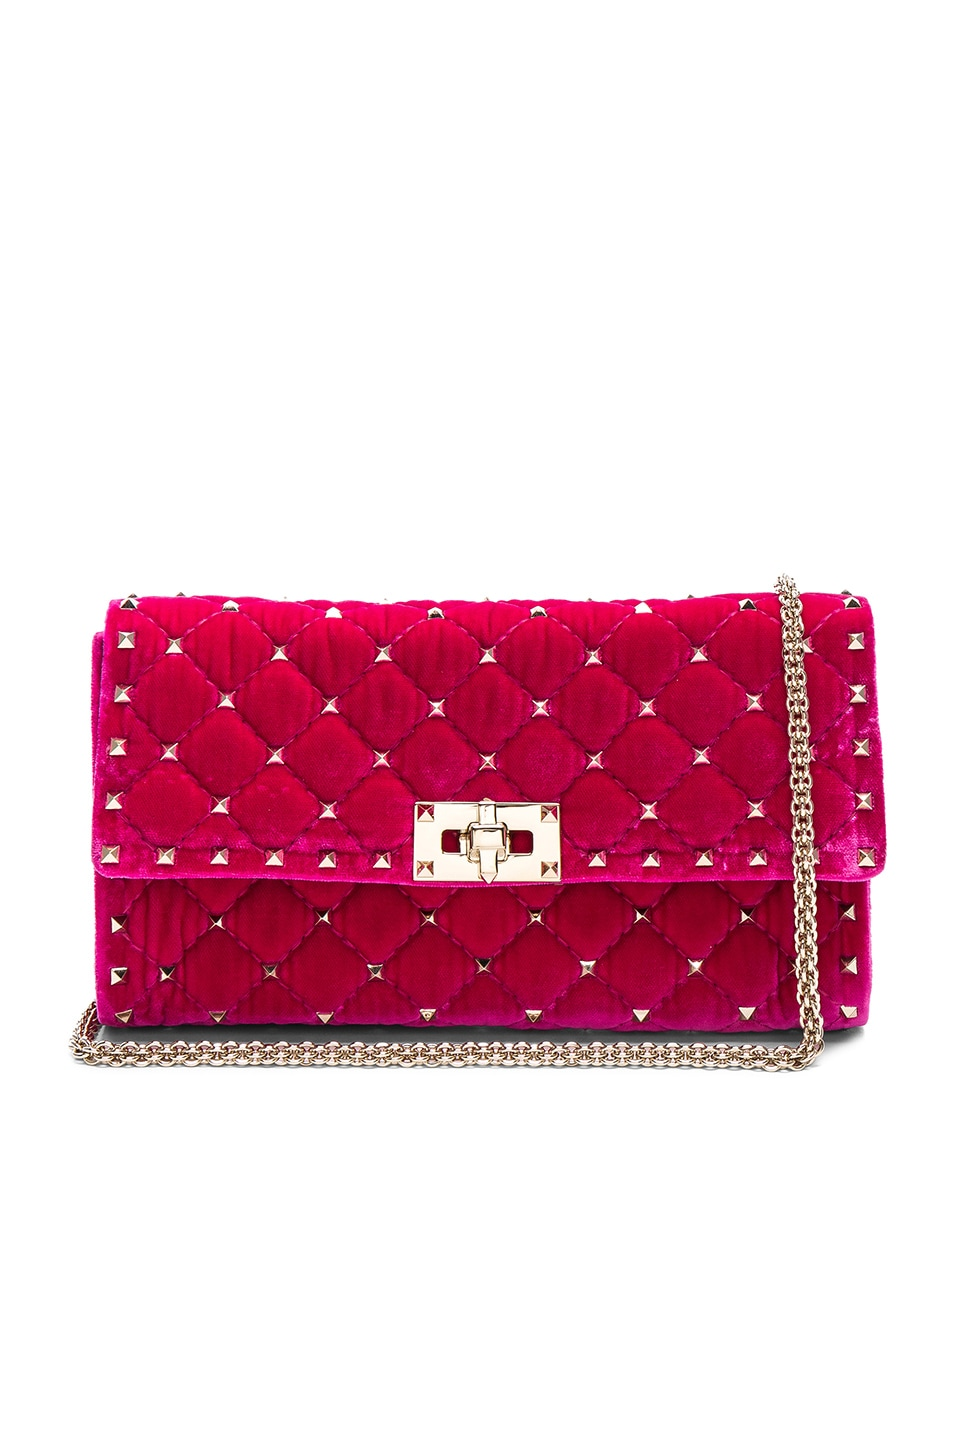 Image 1 of Valentino Velvet Quilted Rockstud Spike Clutch in Disco Pink